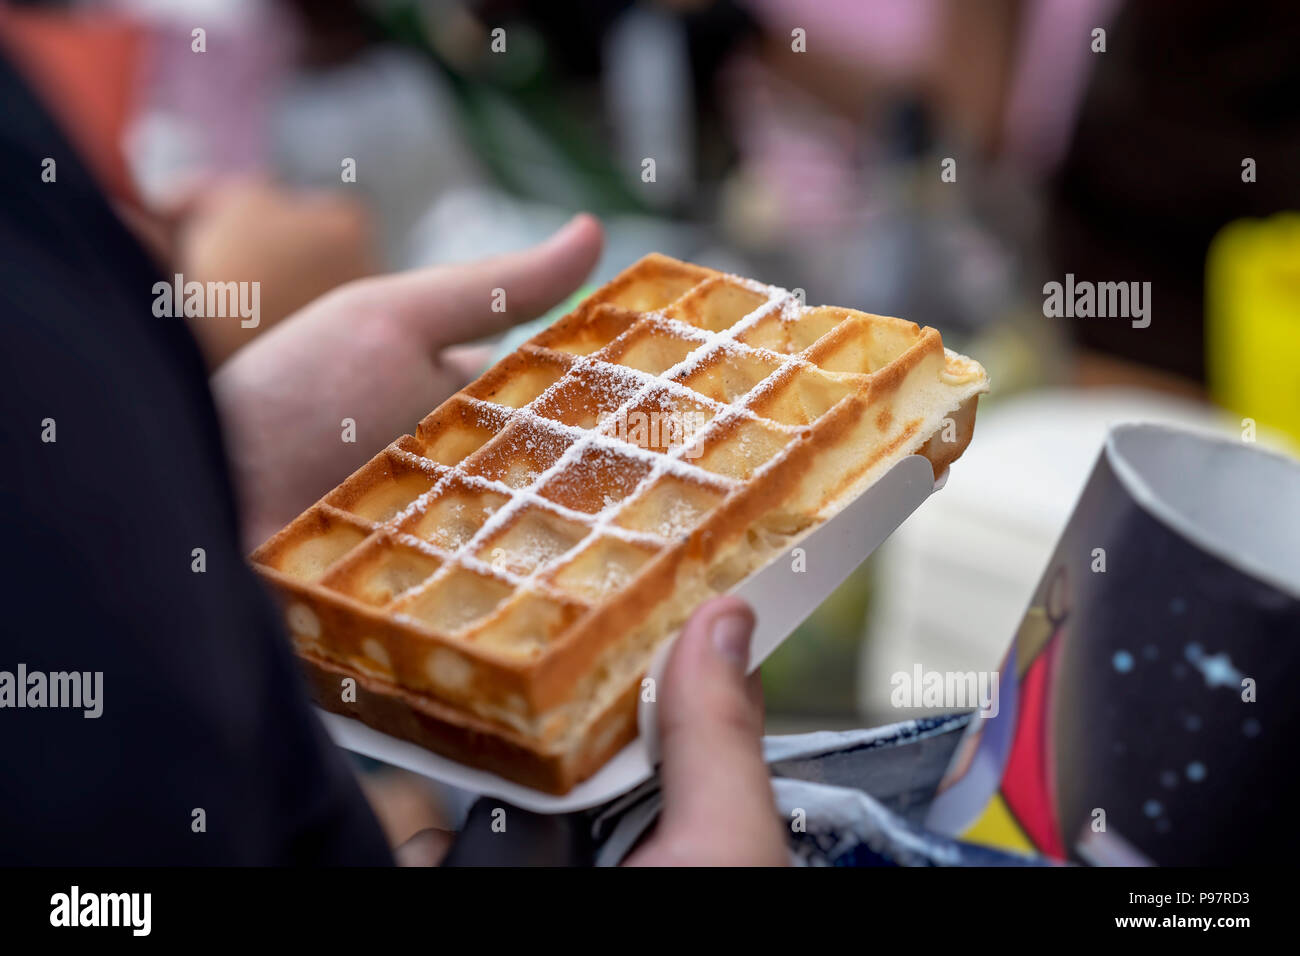 Belgian fresh warm waffle with powdered sugar in hands of buyer. Gastronomic dainty products on market counter, real scene in food market - Stock Image